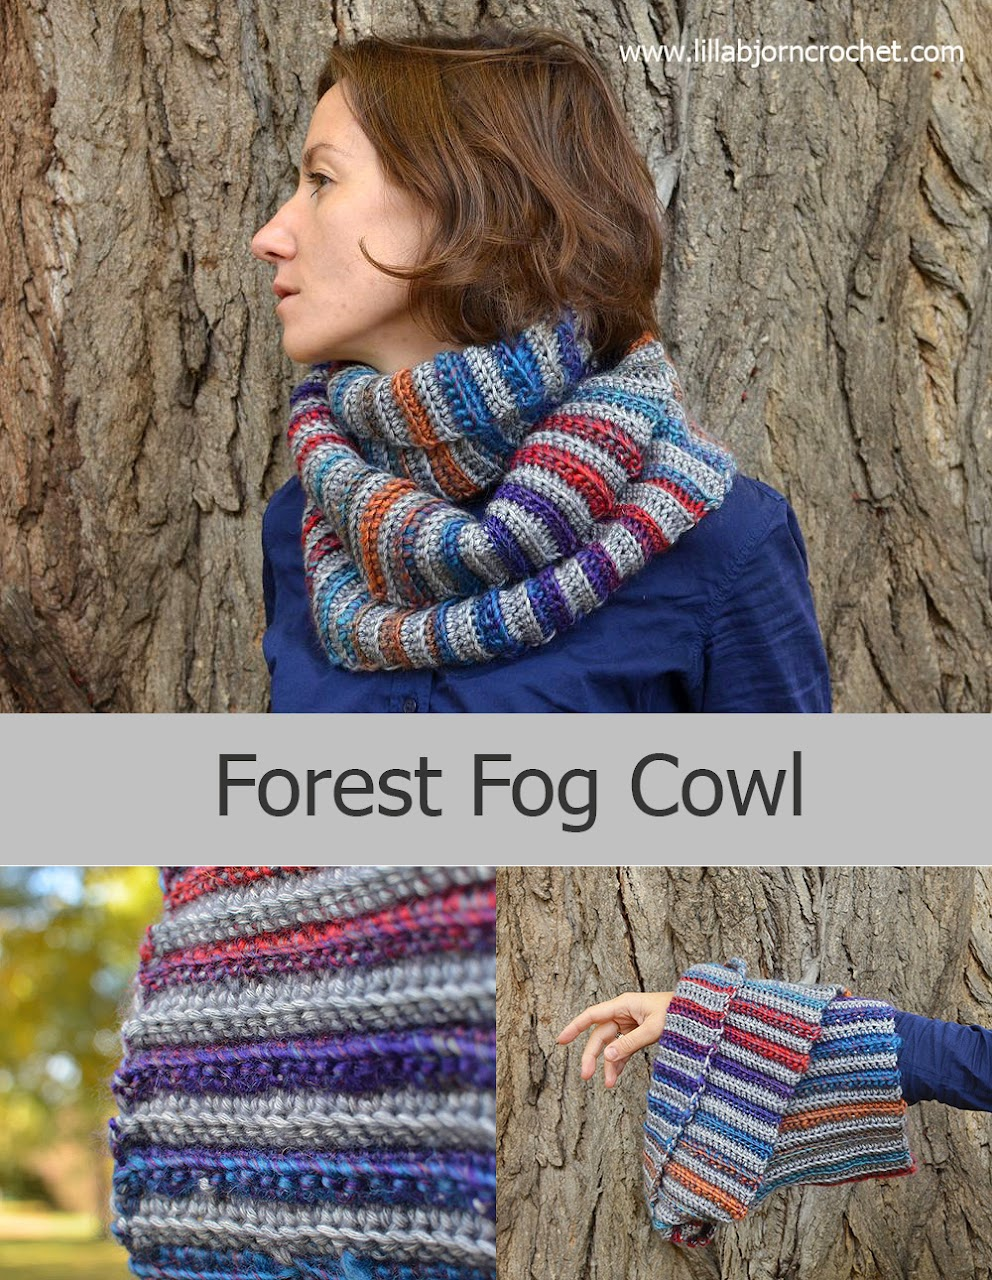 Forest Gog Cowl - Free crochet pattern by Lilla Bjorn Crochet with photo-tutorial